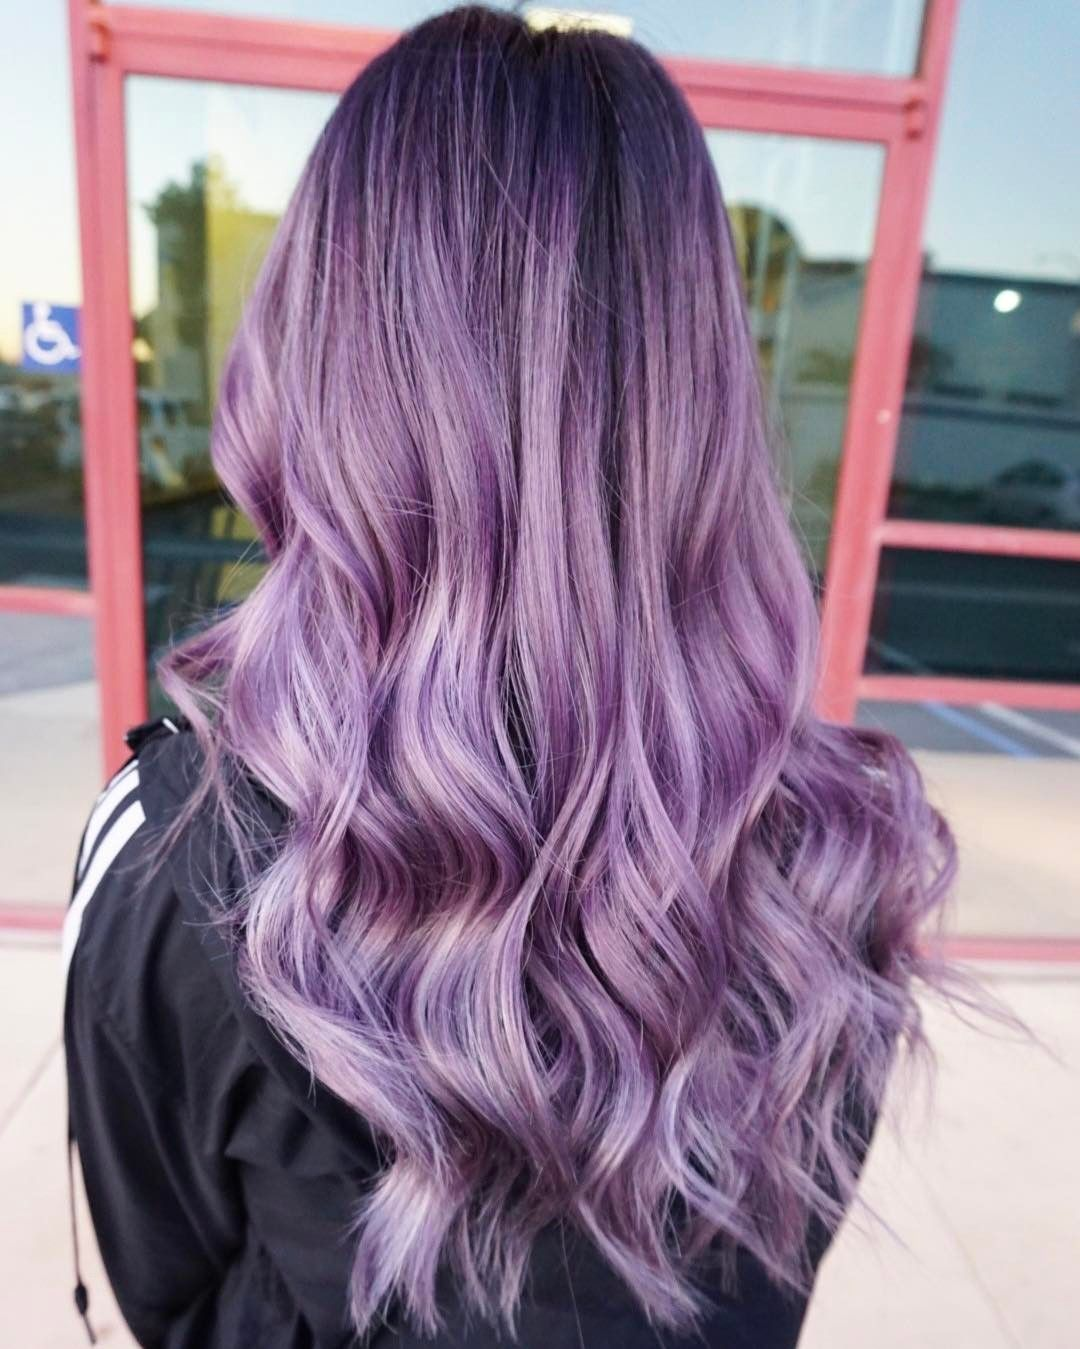 Pin by nora on hair in pinterest hair purple hair and hair